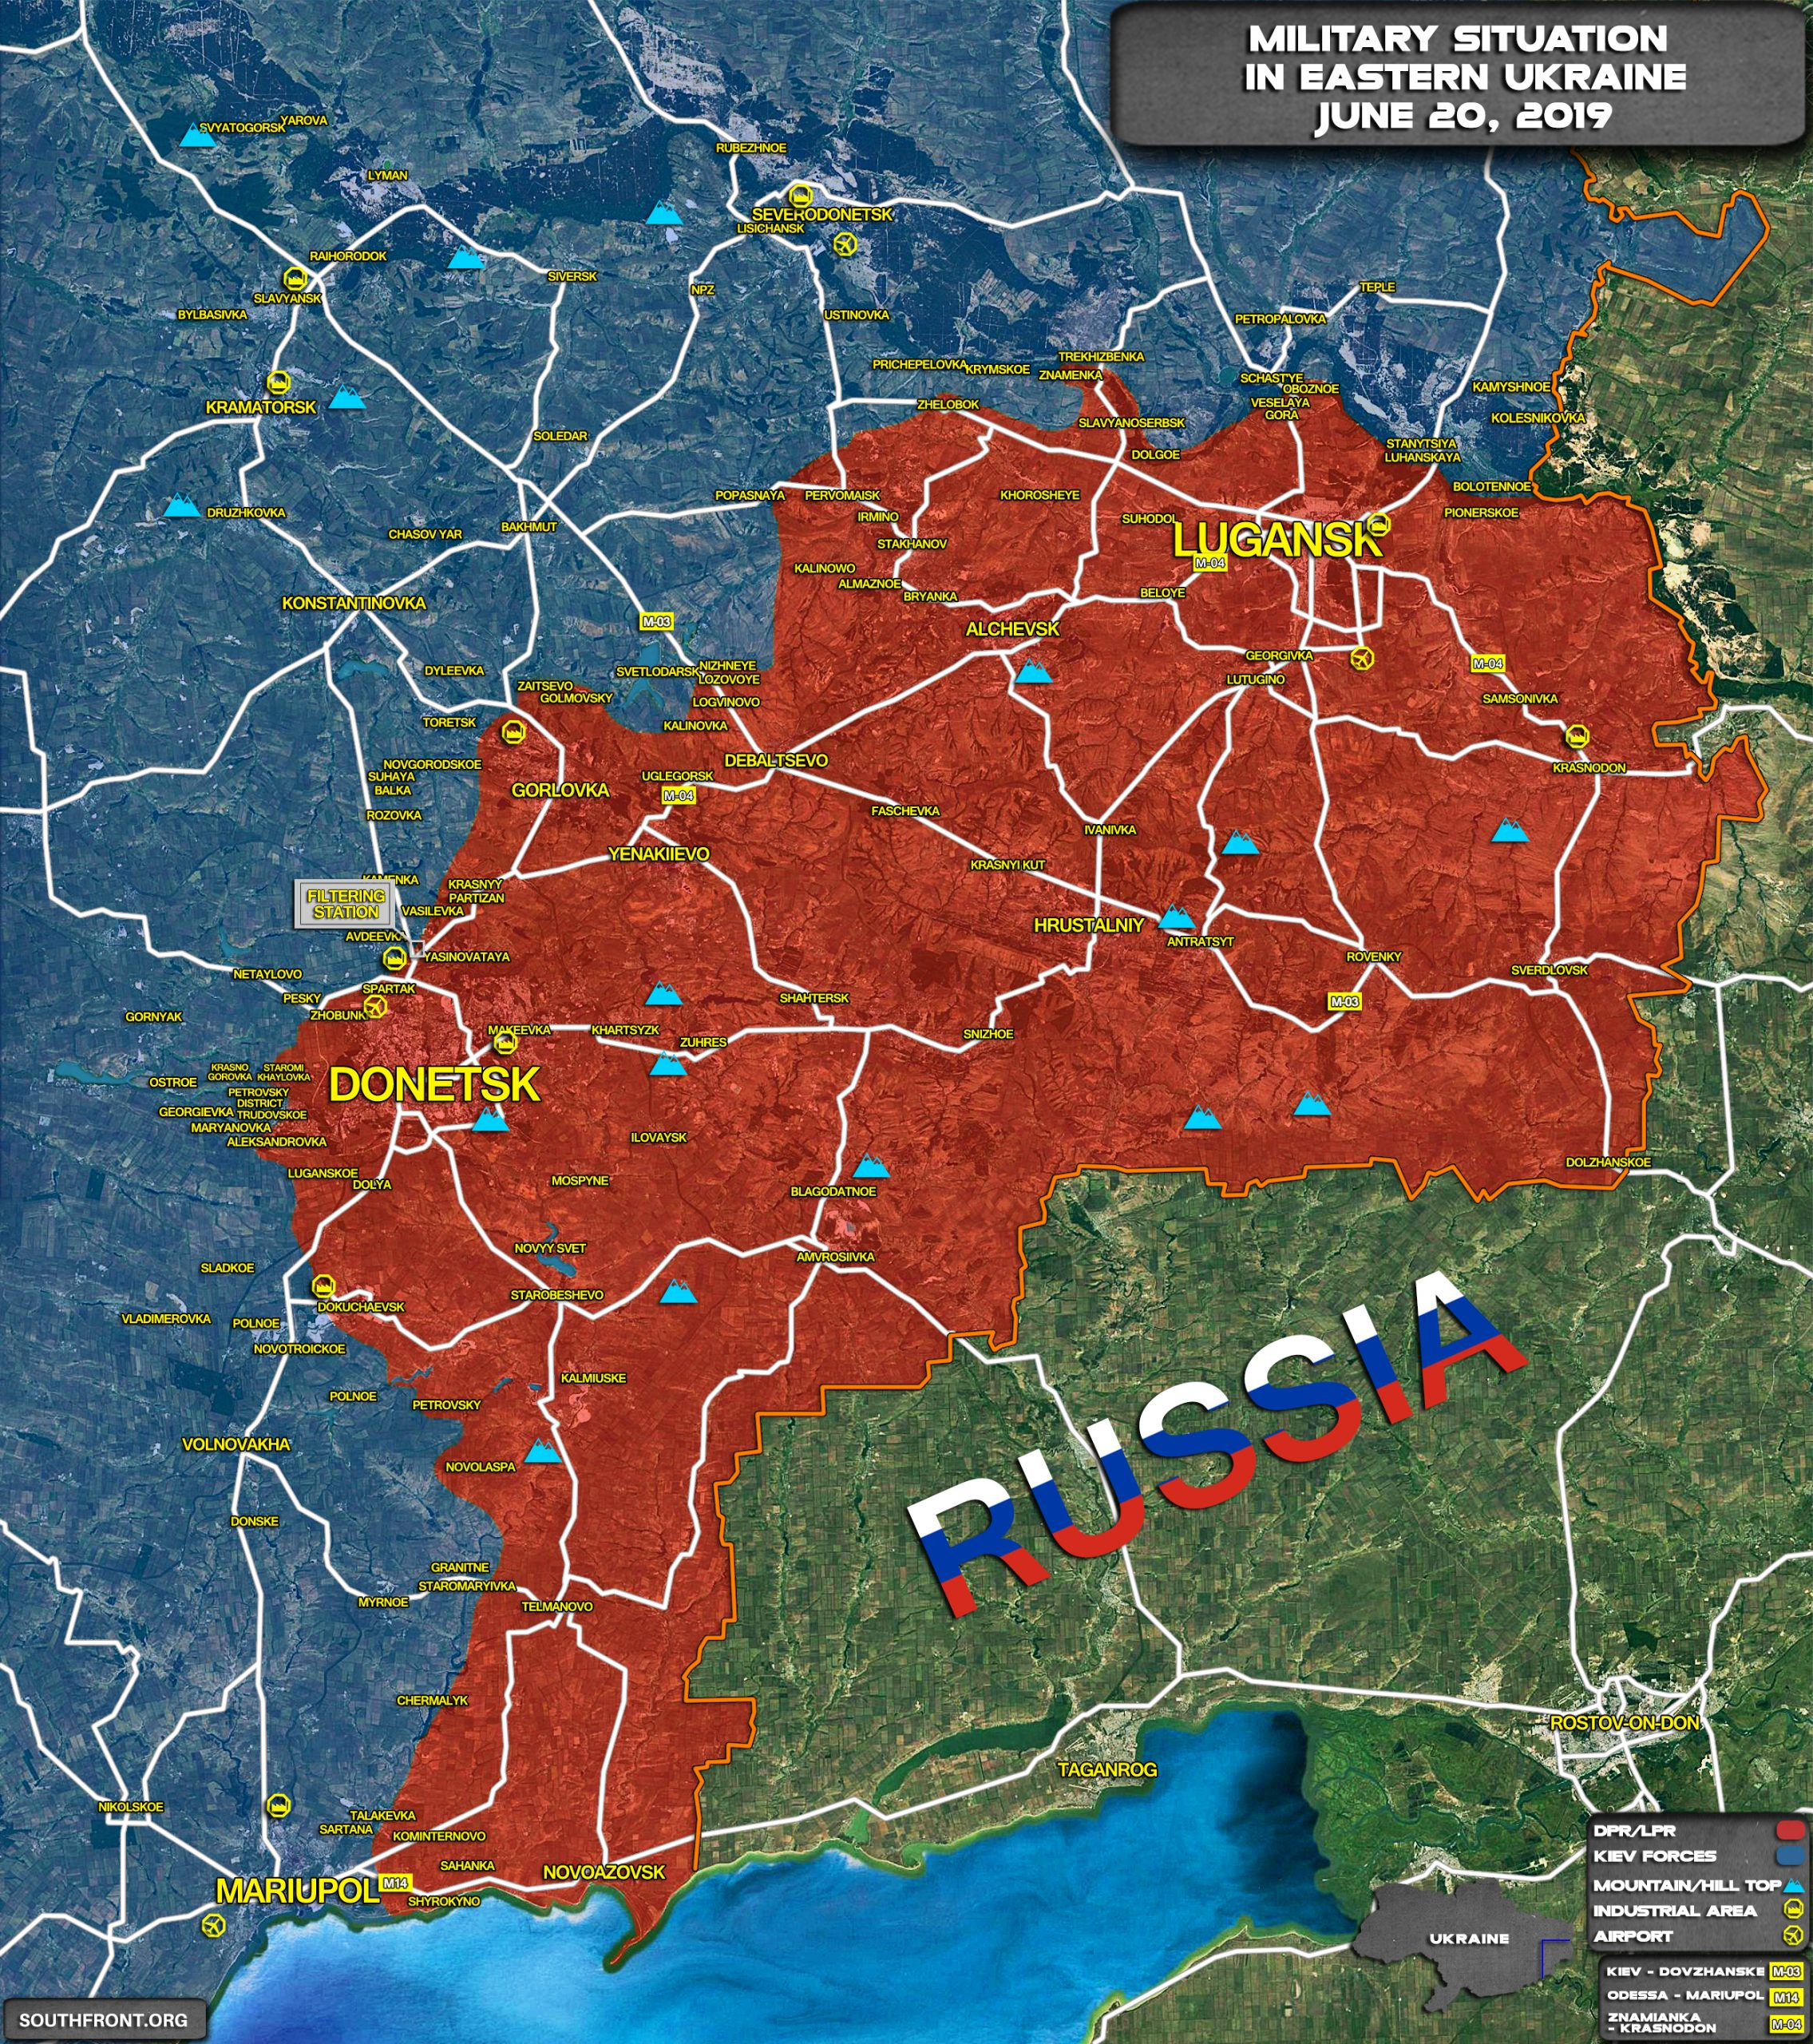 European Somalia: 30th Attempt To Impose 'Complete' Ceasefire In Eastern Ukraine And Why It Is Doomed To Failure